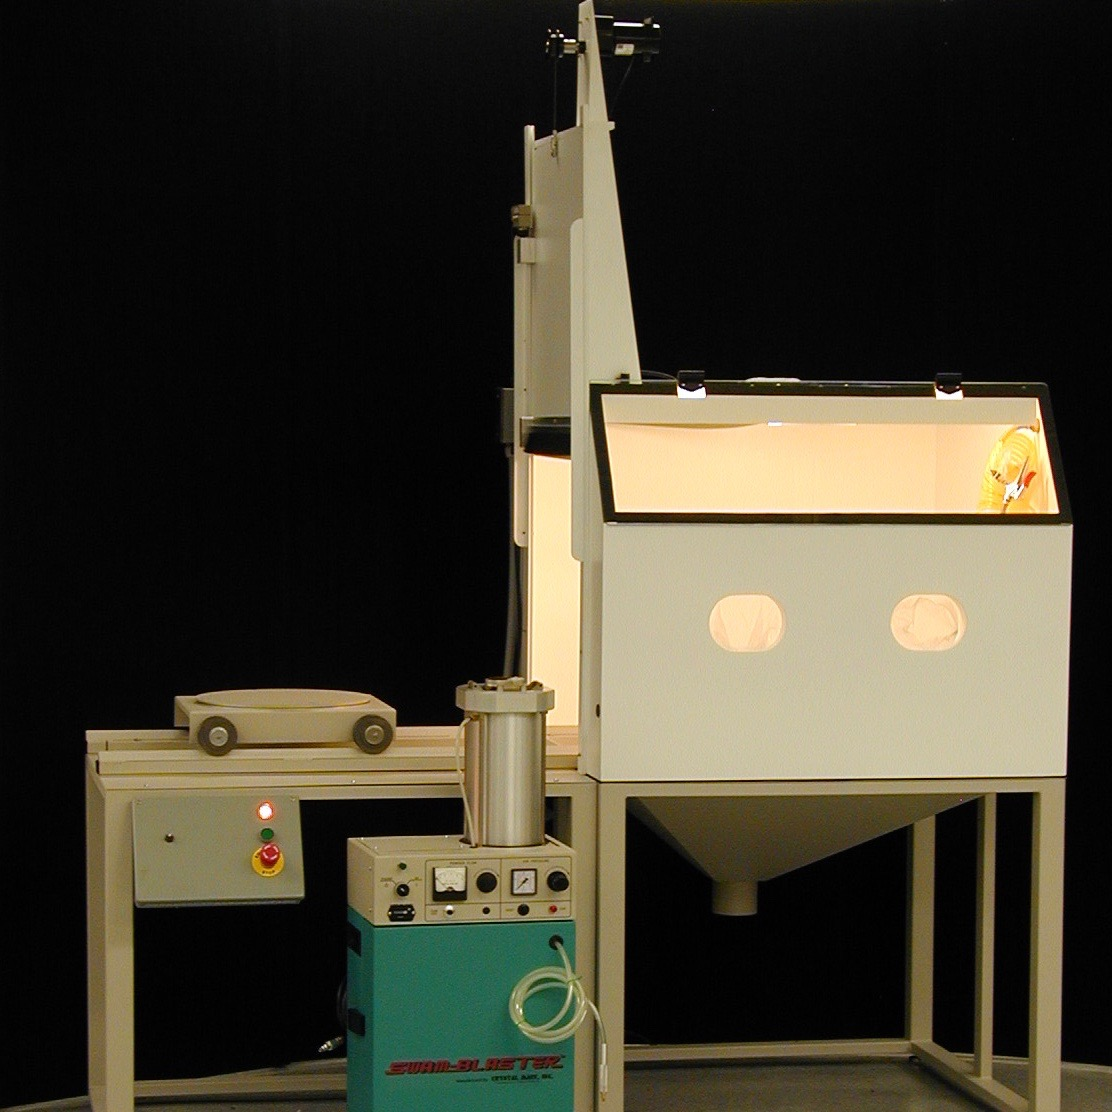 Automated Micro Sand Blasting System with XV-1 SWAM Blaster